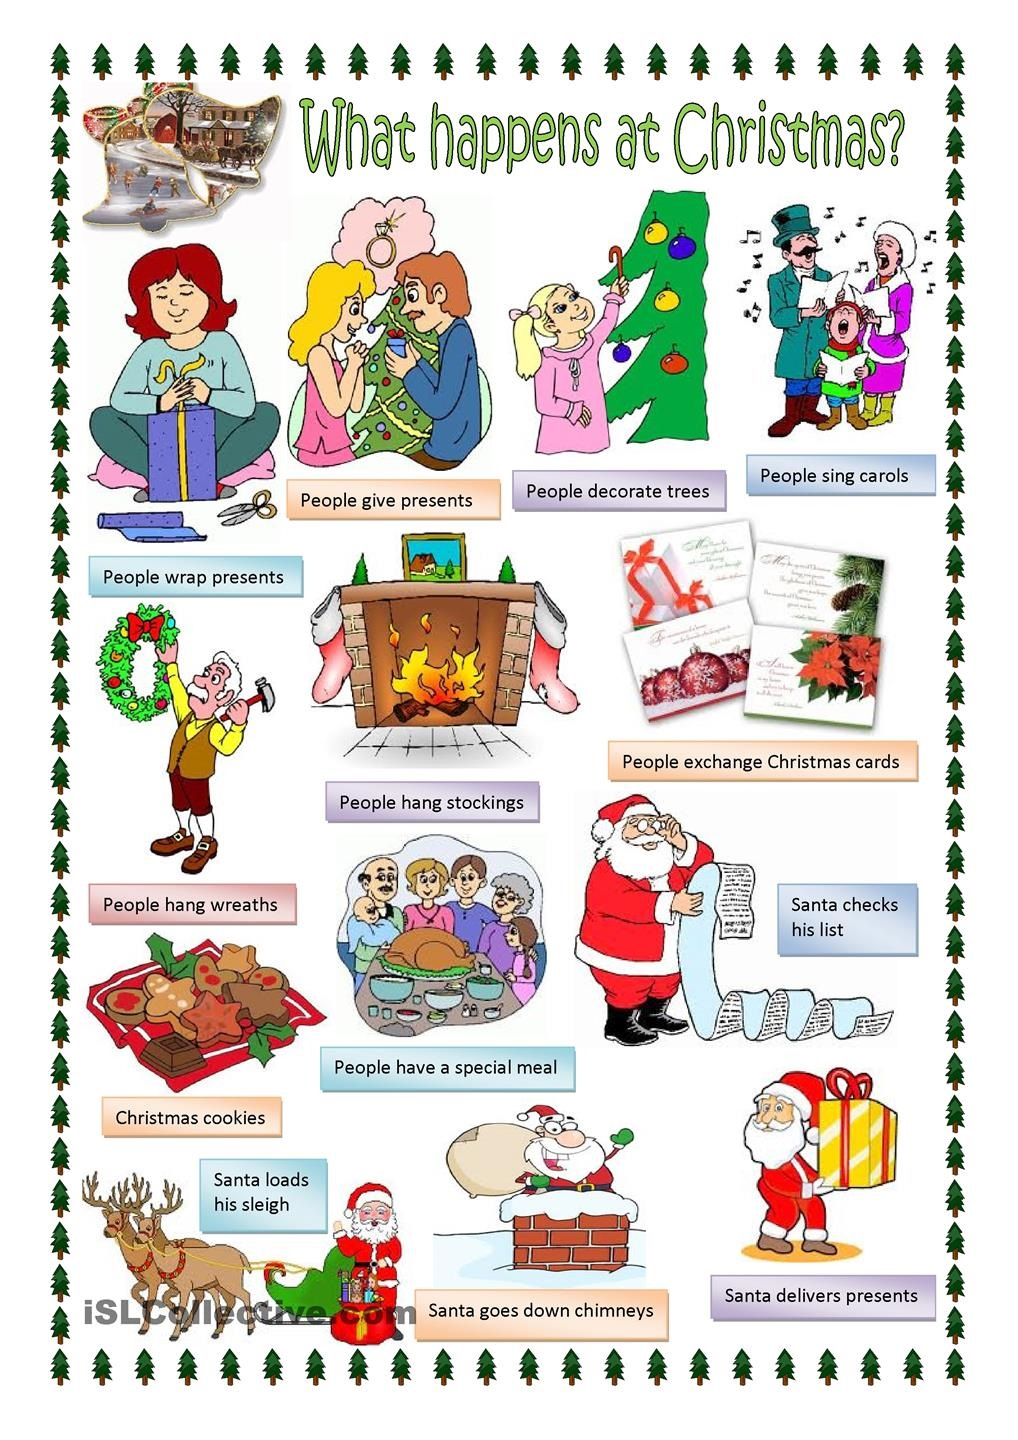 D:\Школа\Рождество\different\what do people do on christmas.jpg